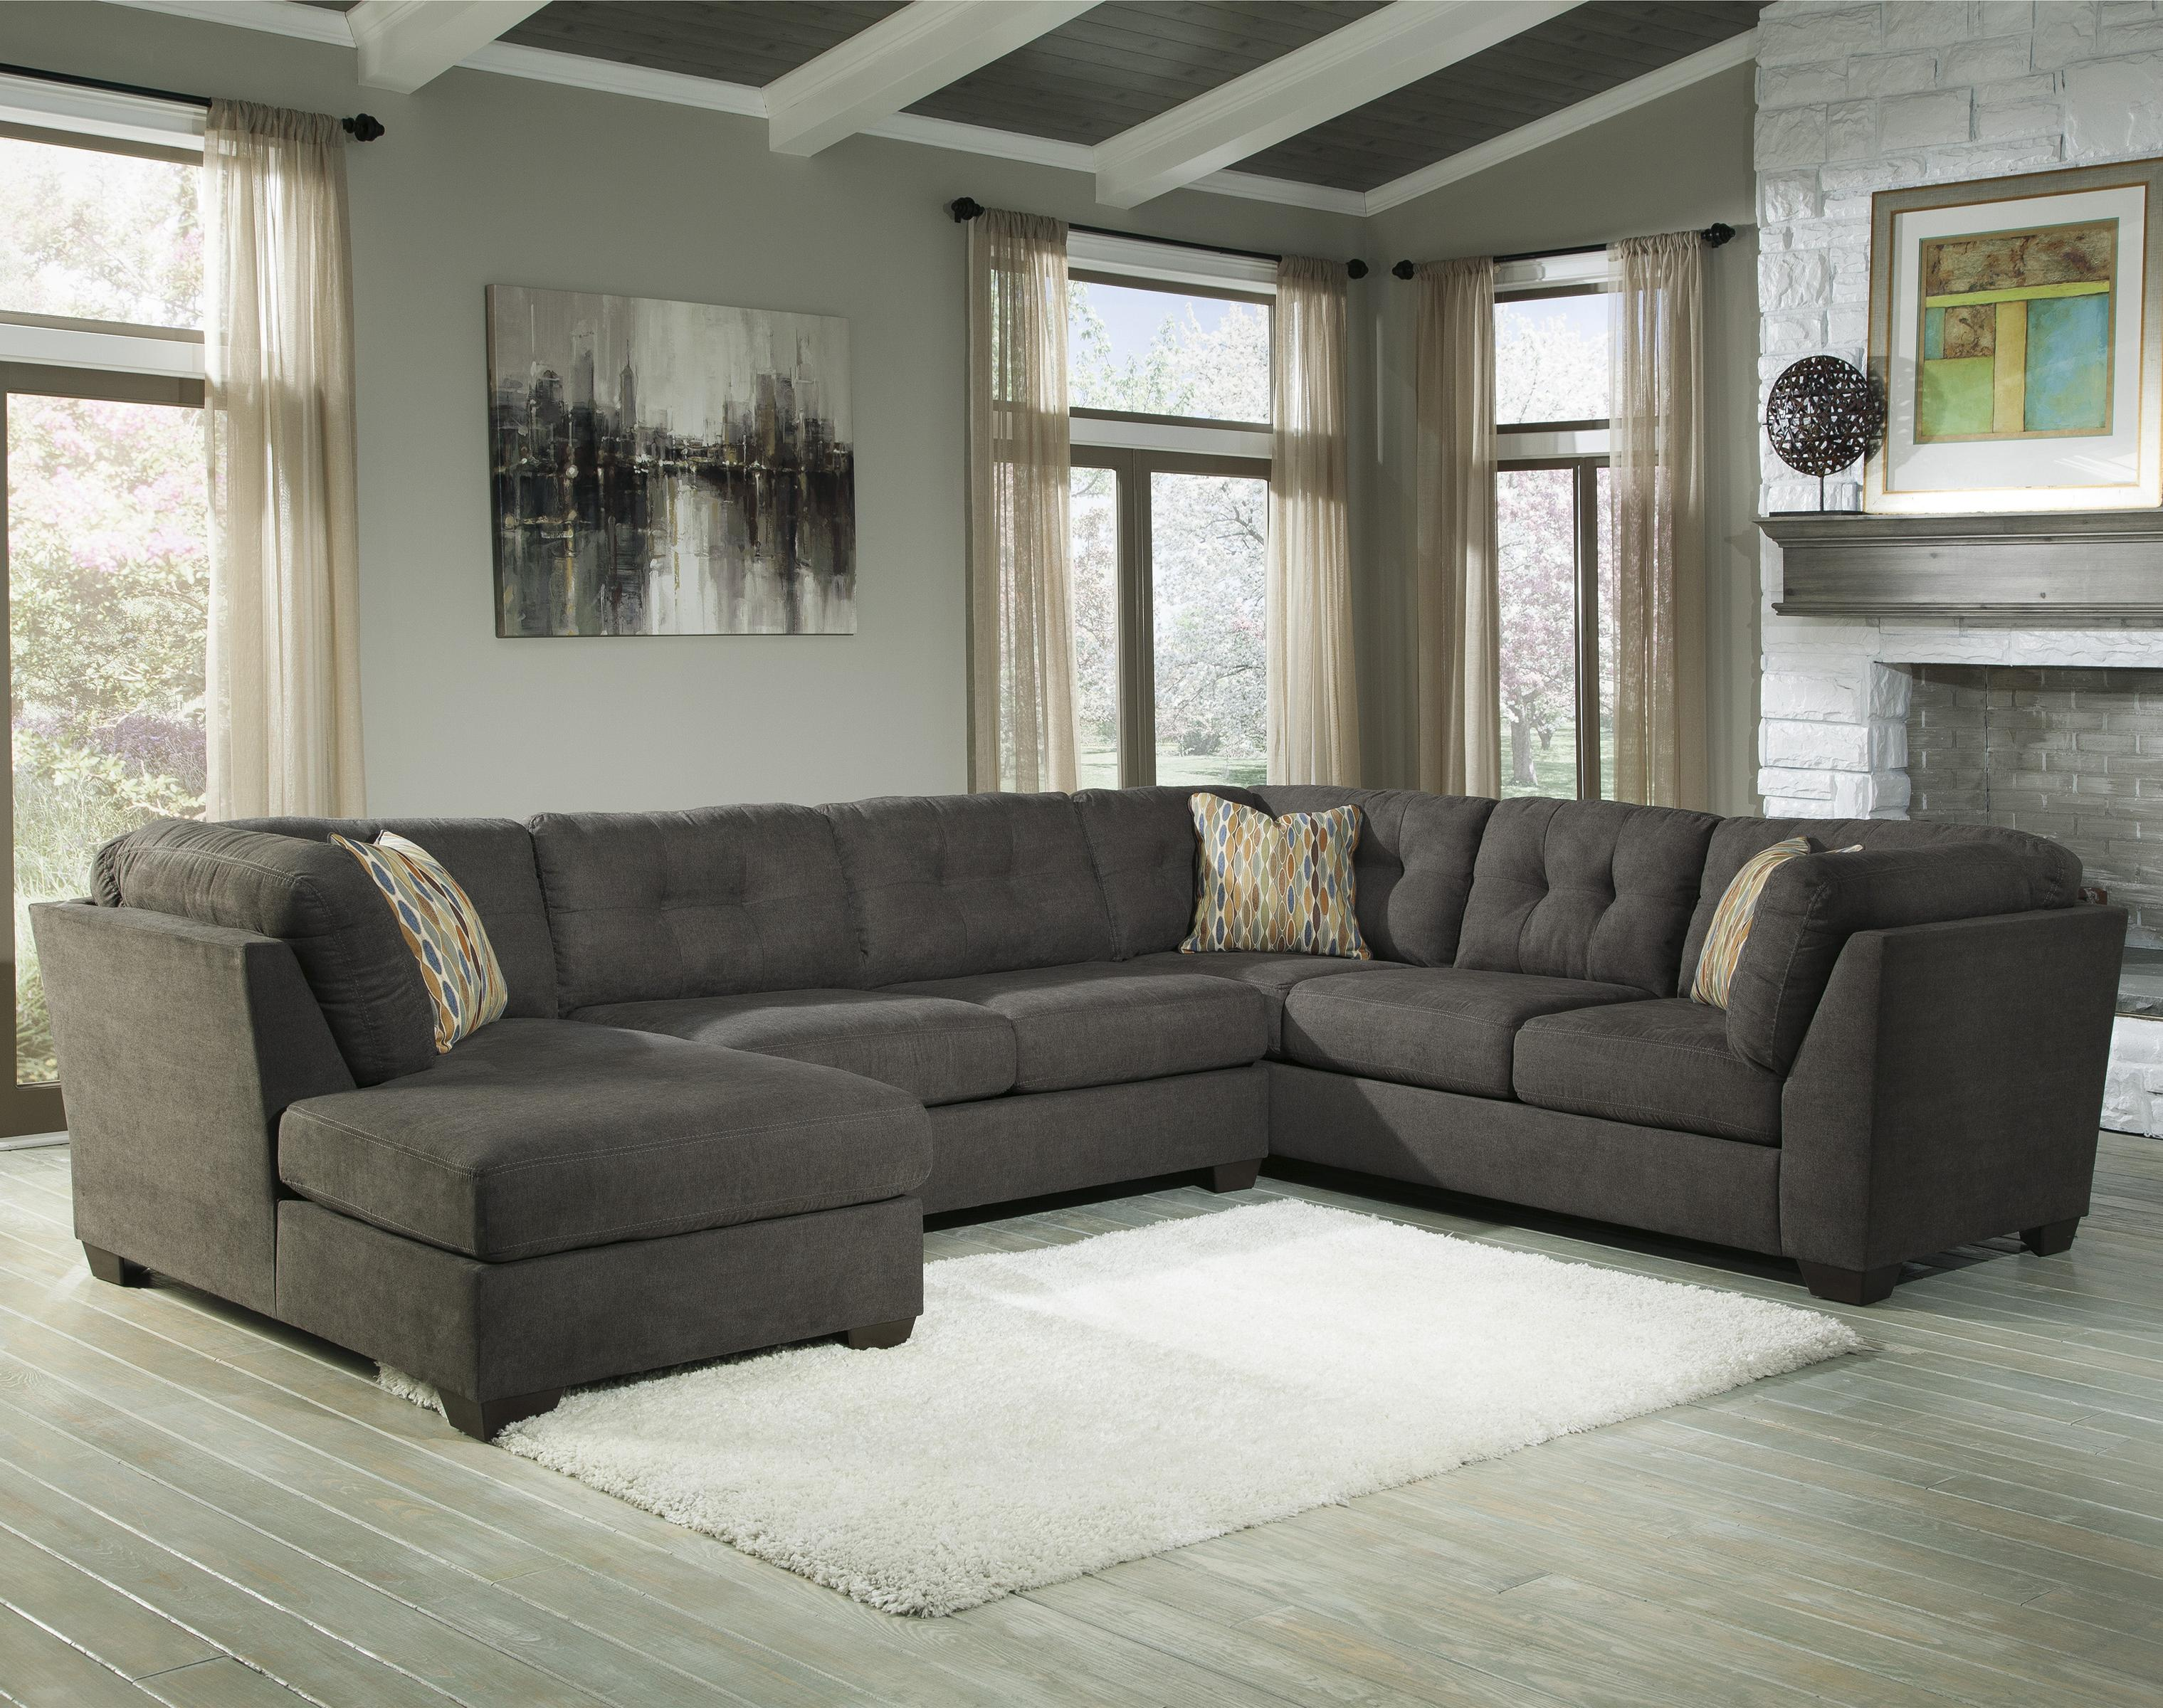 Benchcraft Delta City - Steel 3-Piece Sectional w/ Sleeper & Left Chaise - Item Number: 1970016+71+38